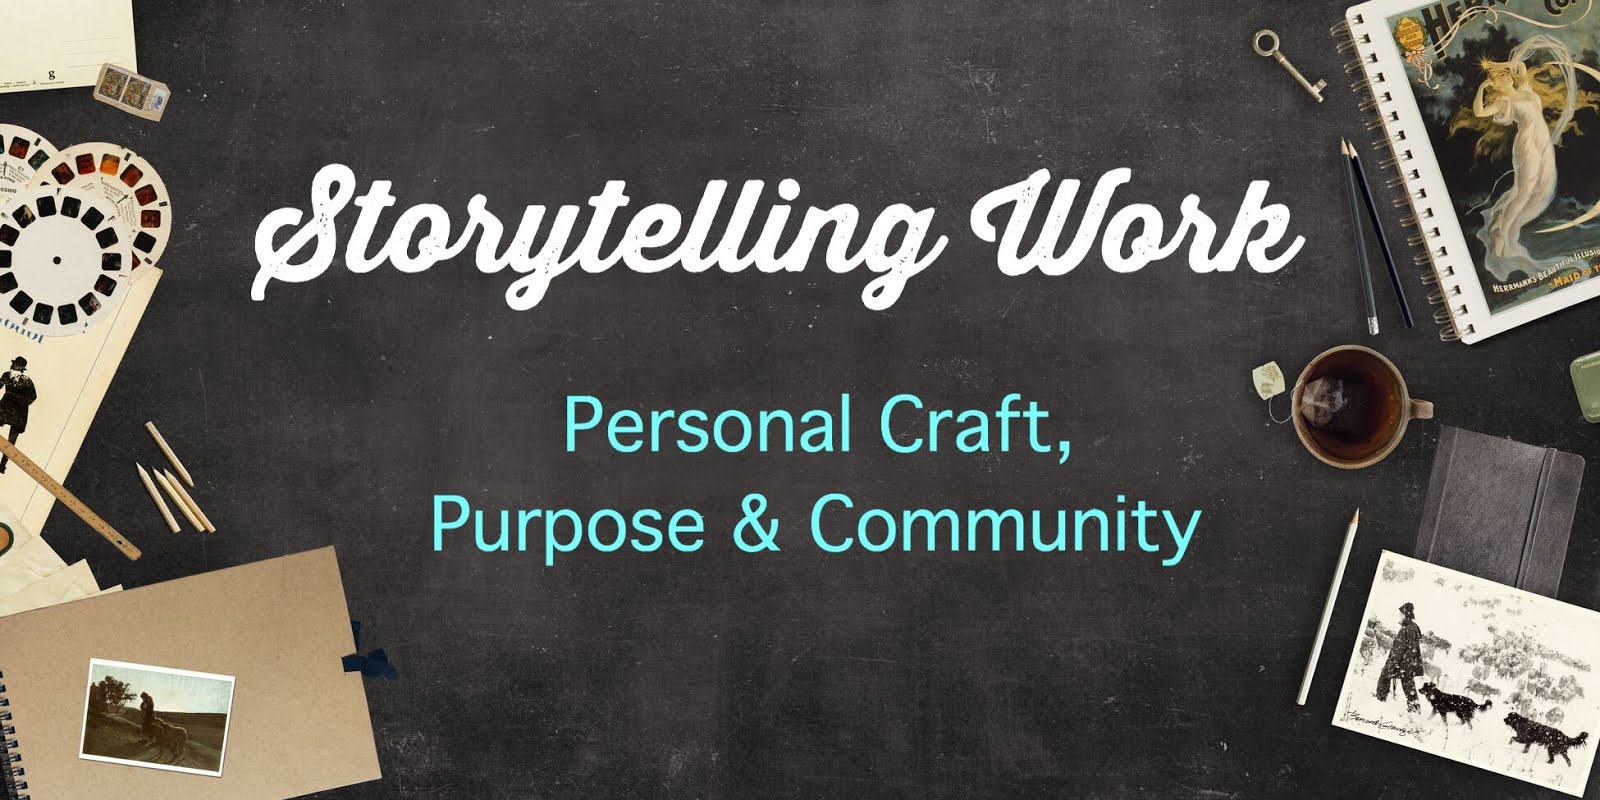 Storytelling work: Personal Craft, Purpose and Community